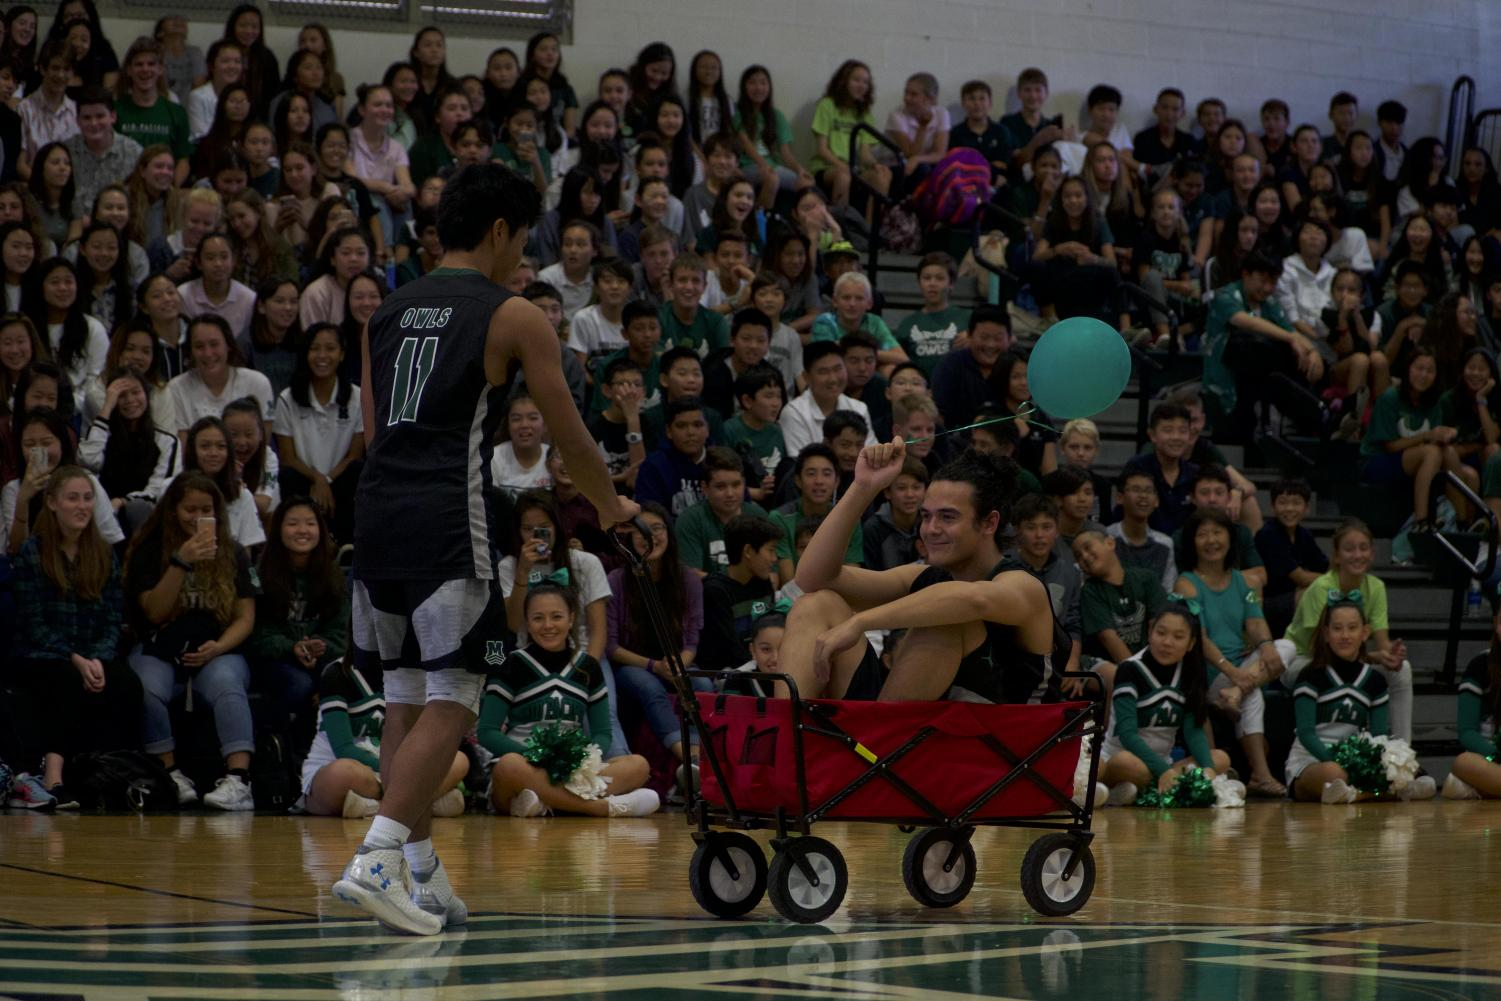 Last years' homecoming featured games and a pep rally.